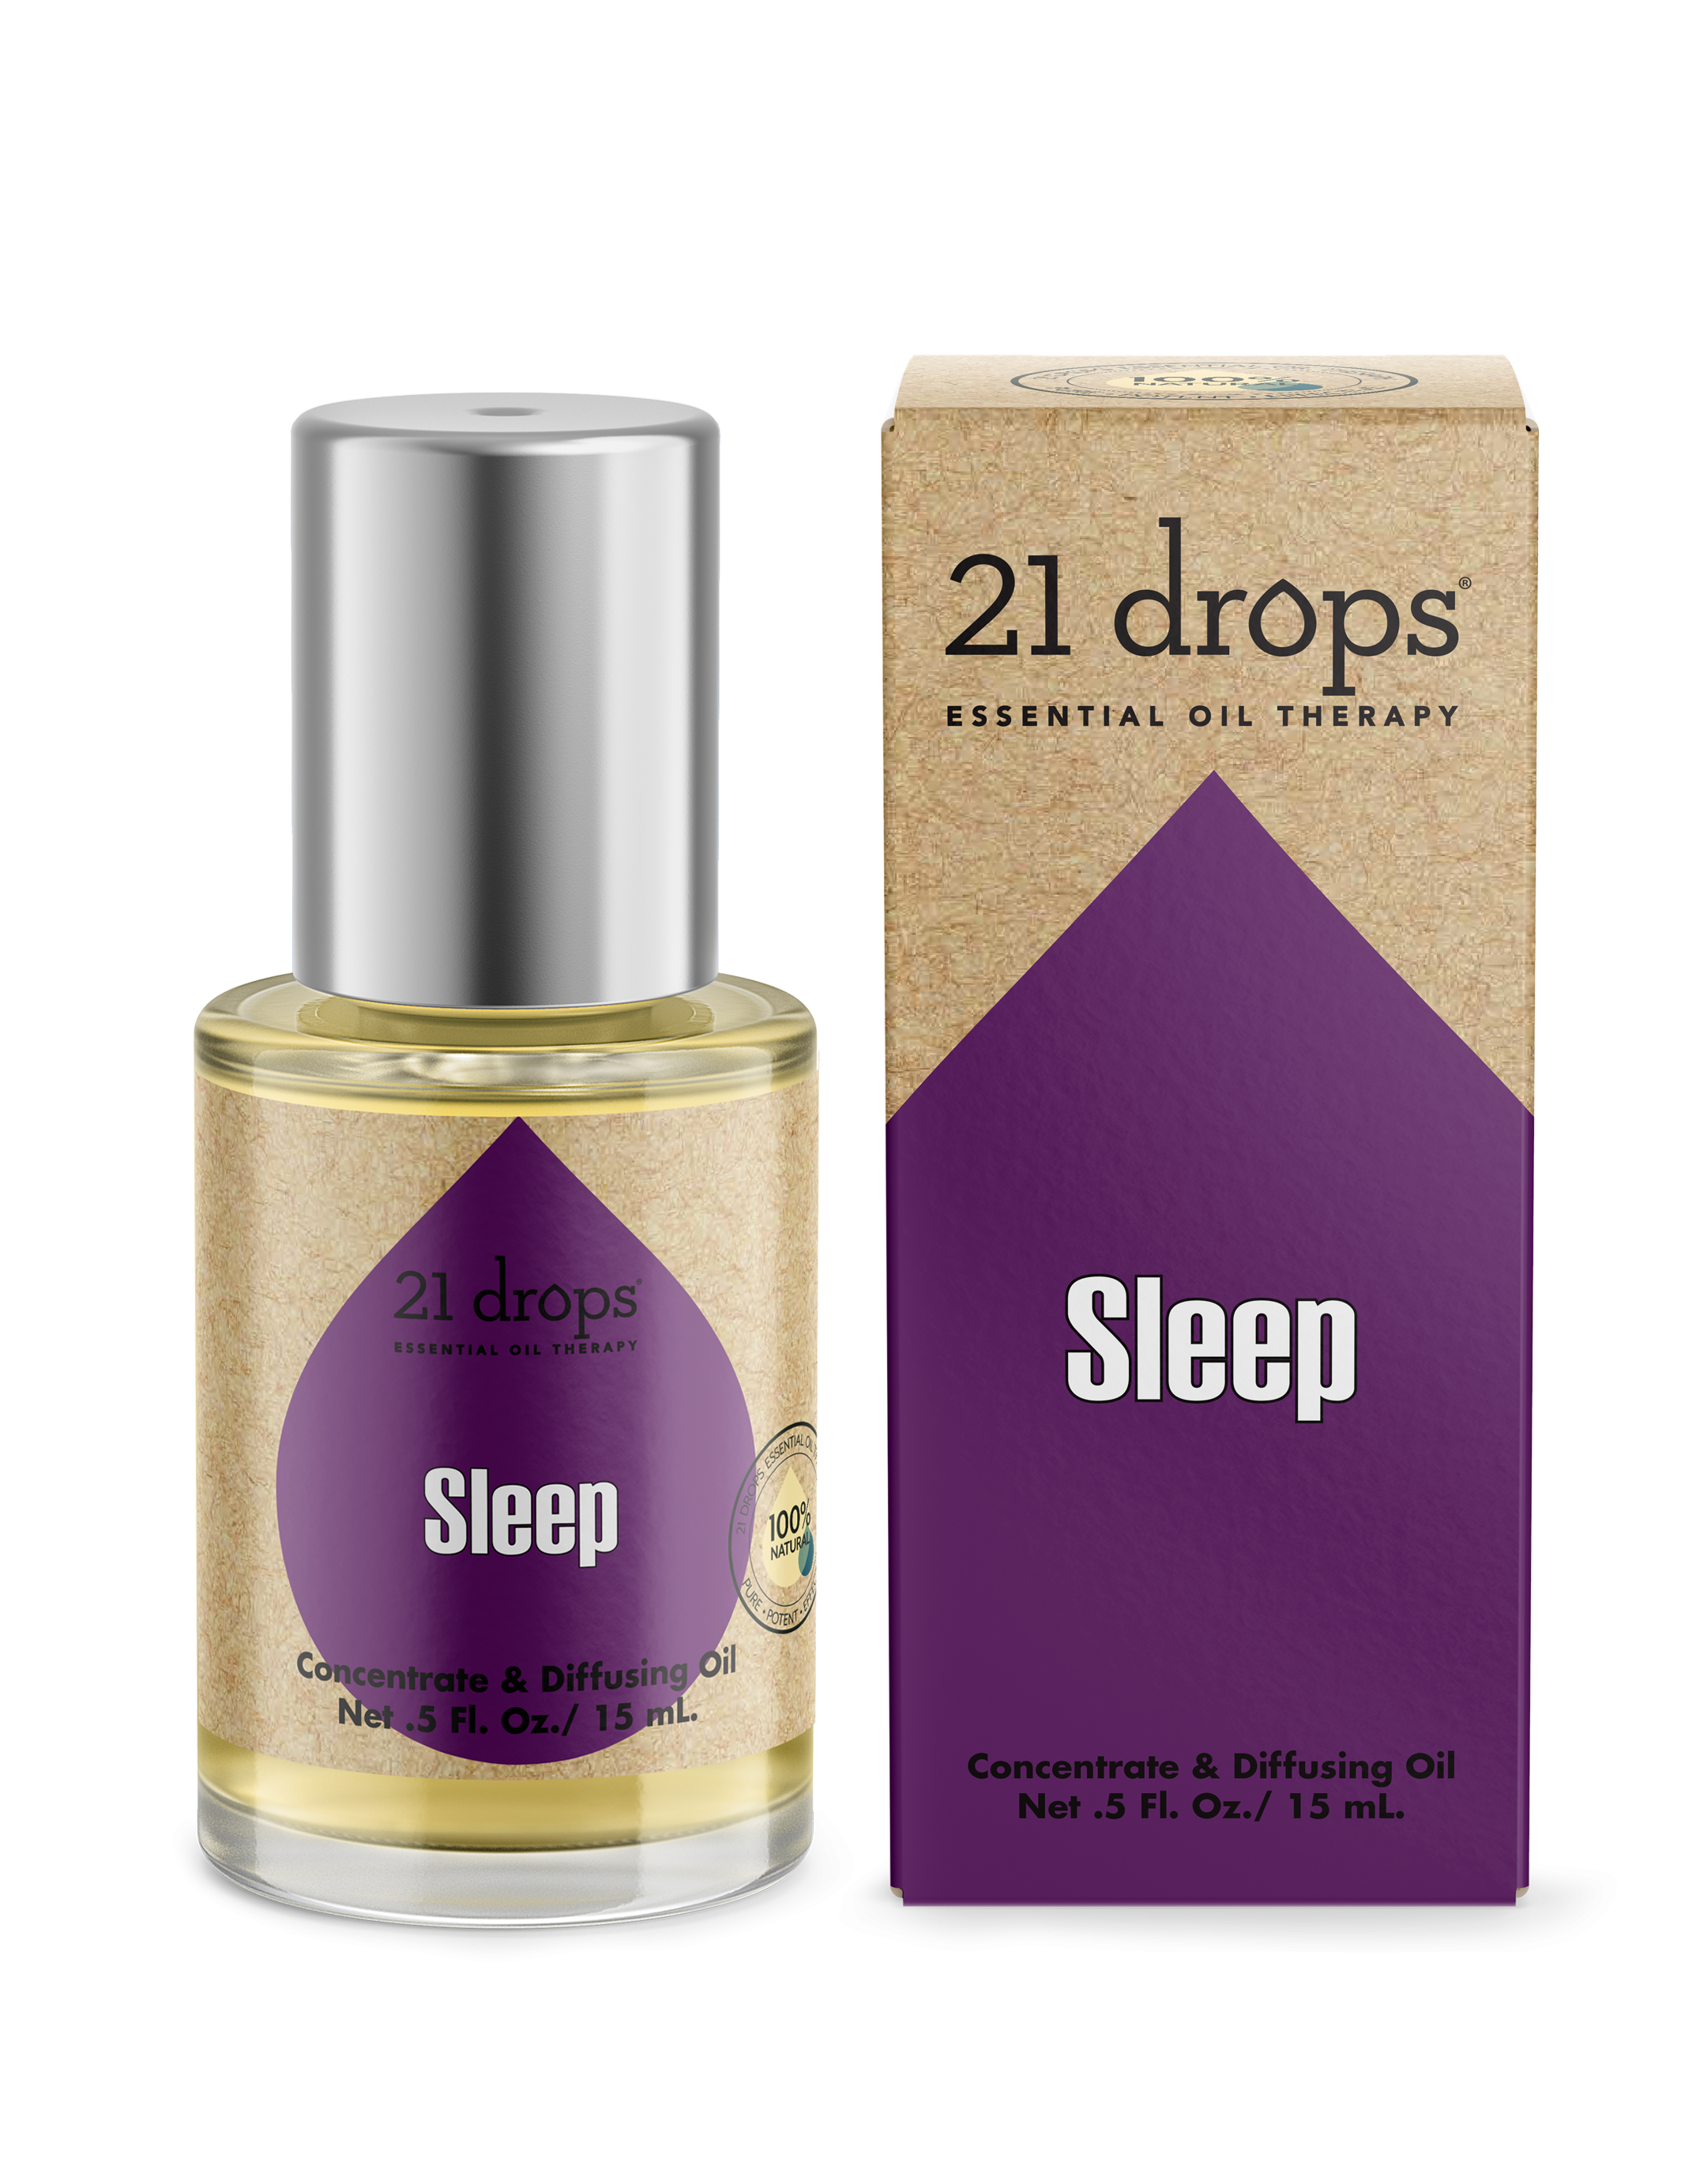 21 drops sleep #18 essential oil aromatherapy concentrate and diffusing oil